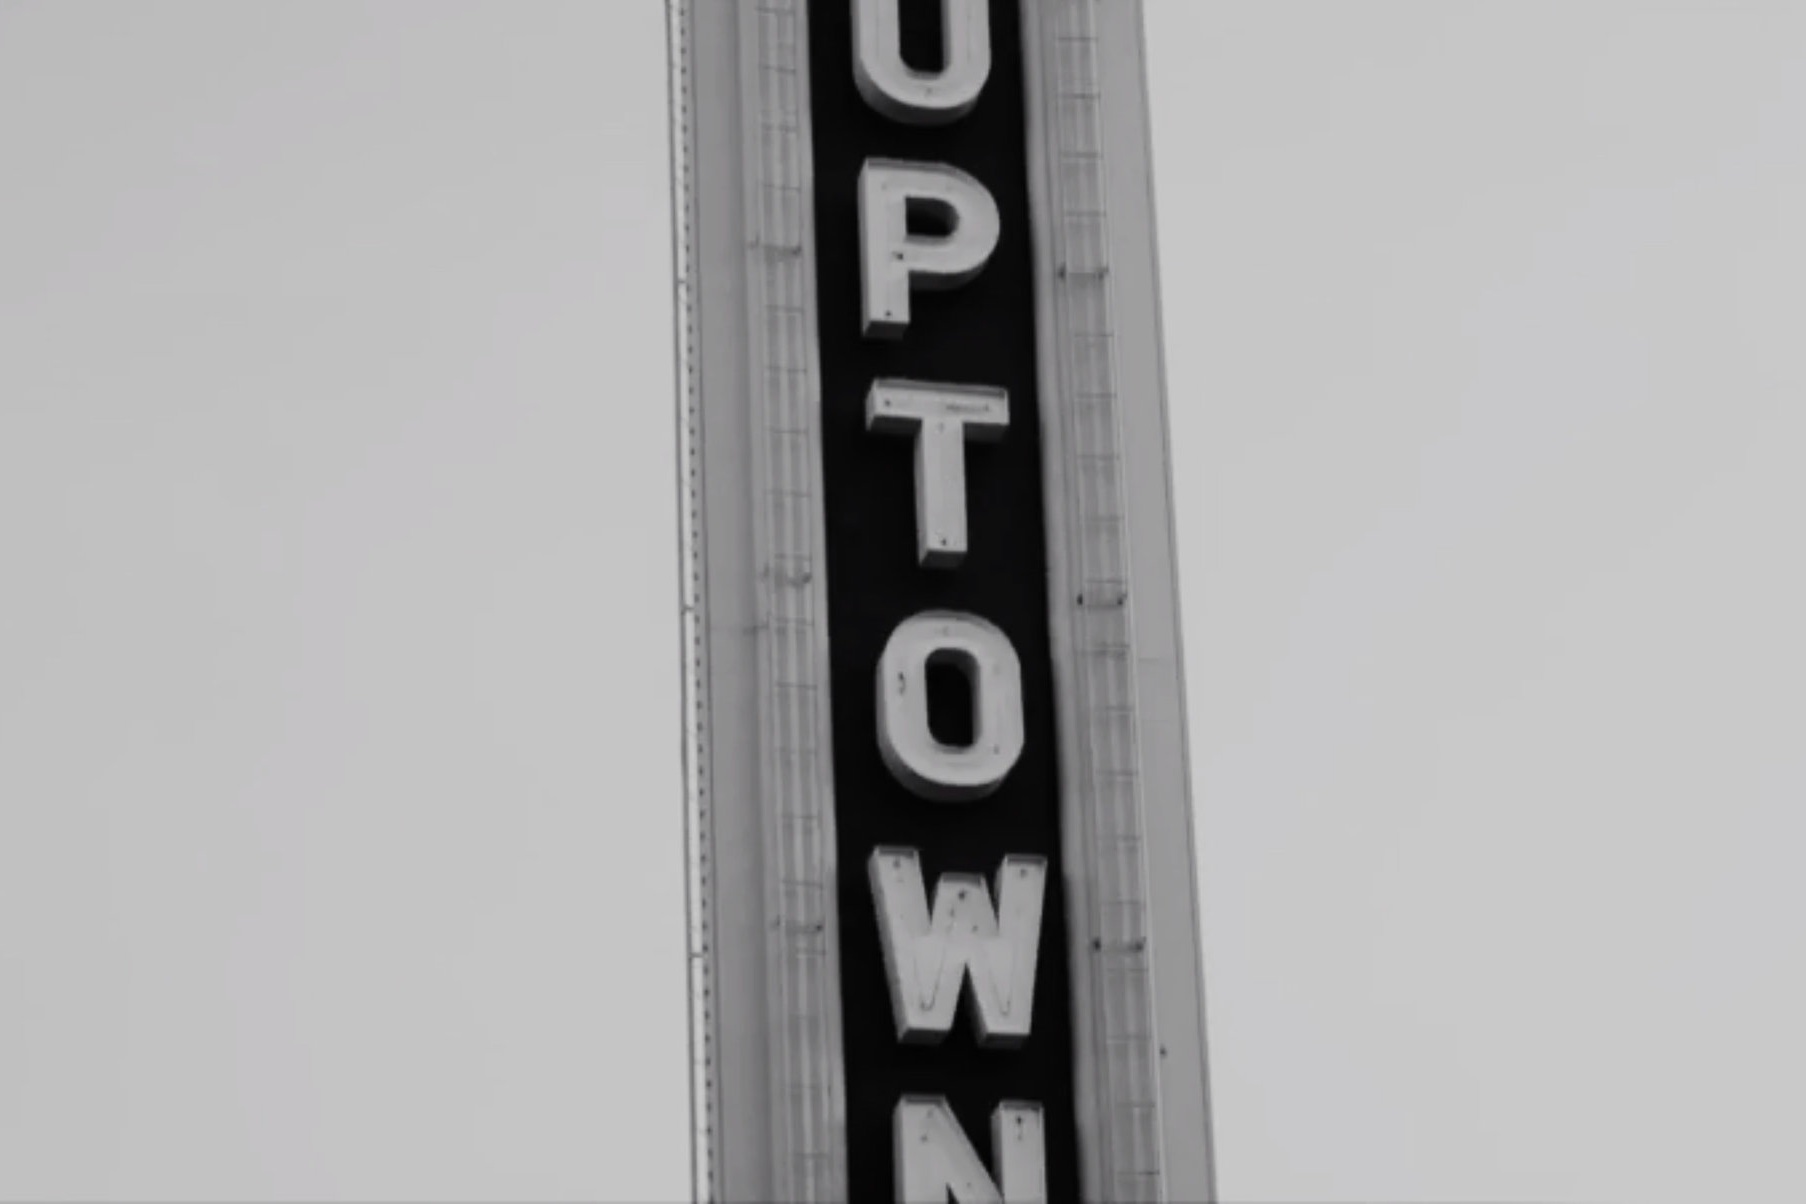 KUVA is located one block south of Calhoun Square in the heart of Uptown. We are walking distance to great food and great shopping. - Gotta love Uptown!